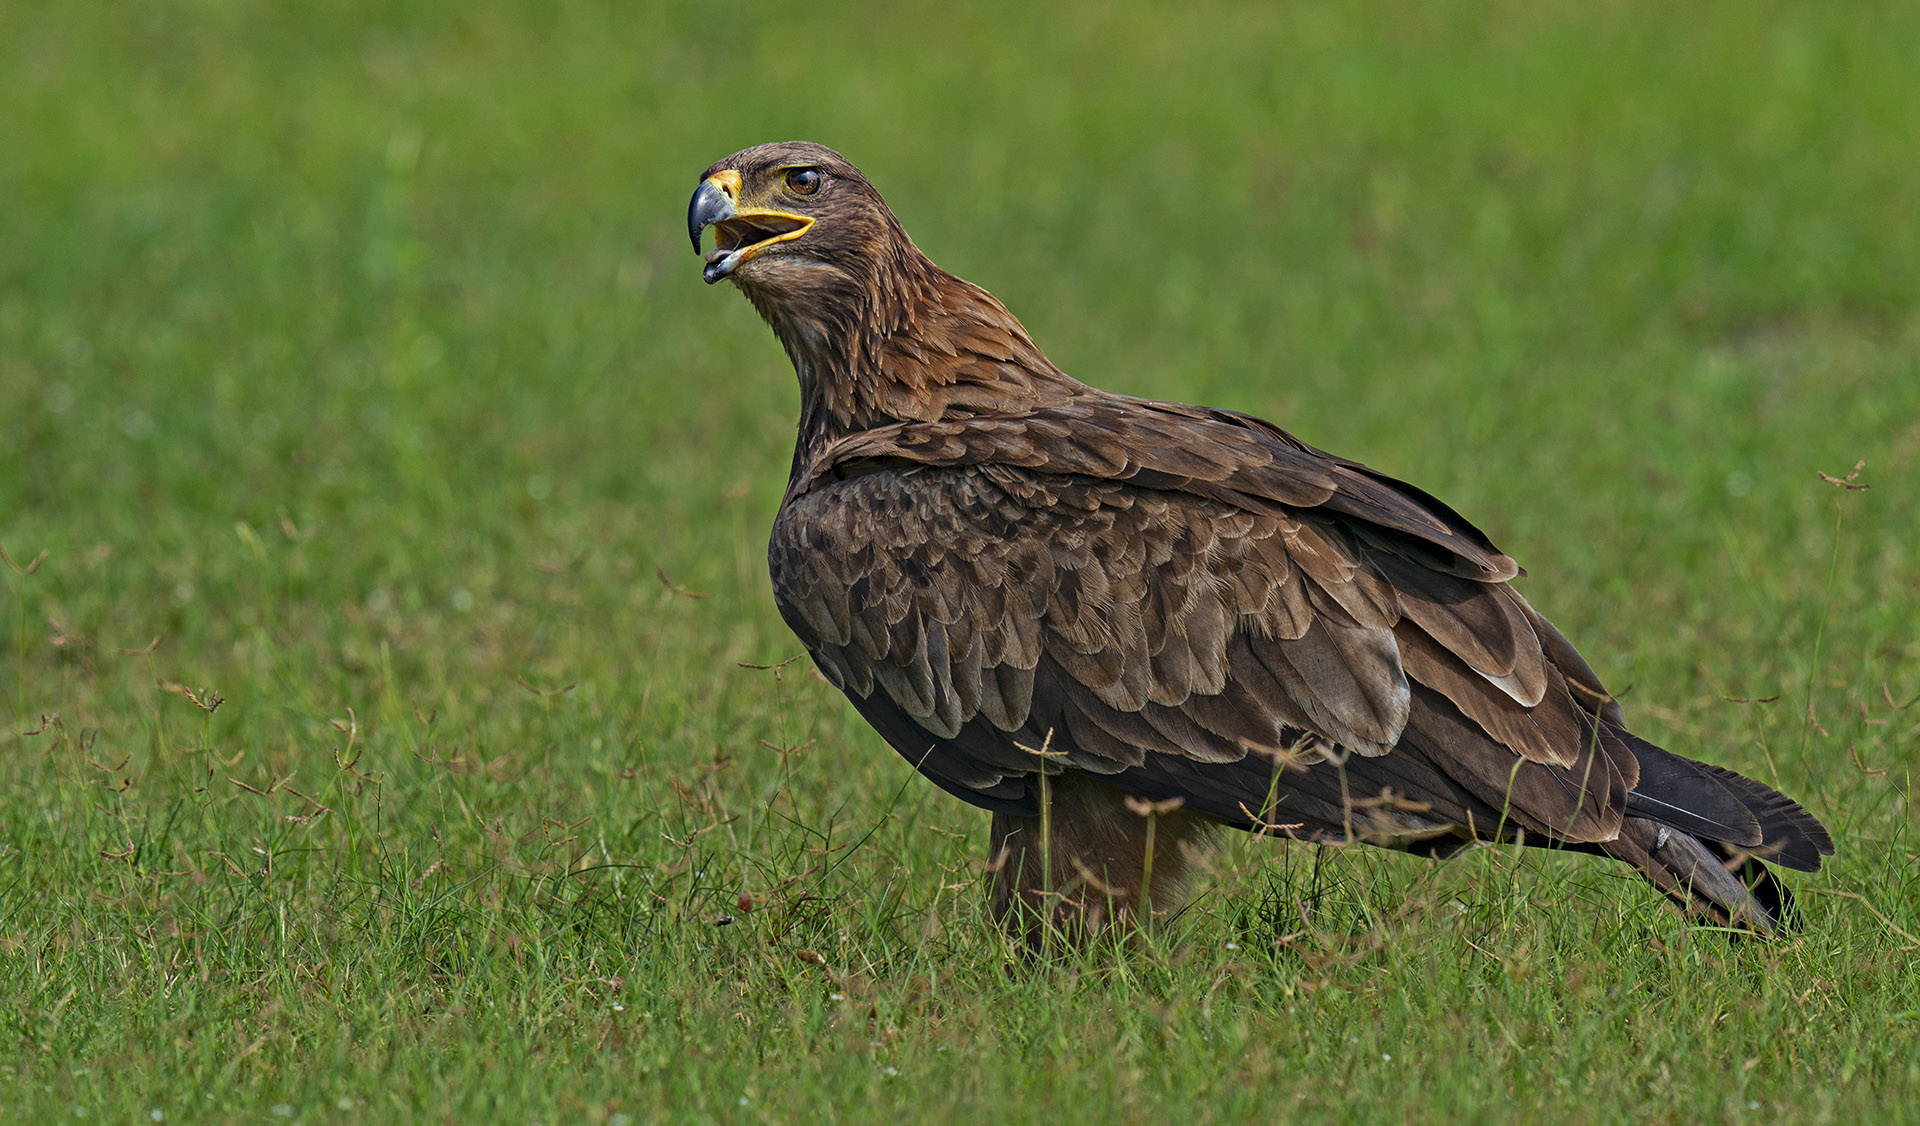 The tawny eagle (Aquilla rapax) is a little smaller in size. This regal bird of prey is found in arid habitats ranging from Saharan Africa to the Middle East and South Asia, and eats a range of prey, from rodents to small birds and mammals. Like other raptors, this eagle too will feed on carrion if available. Photo: Dhritiman Mukherjee